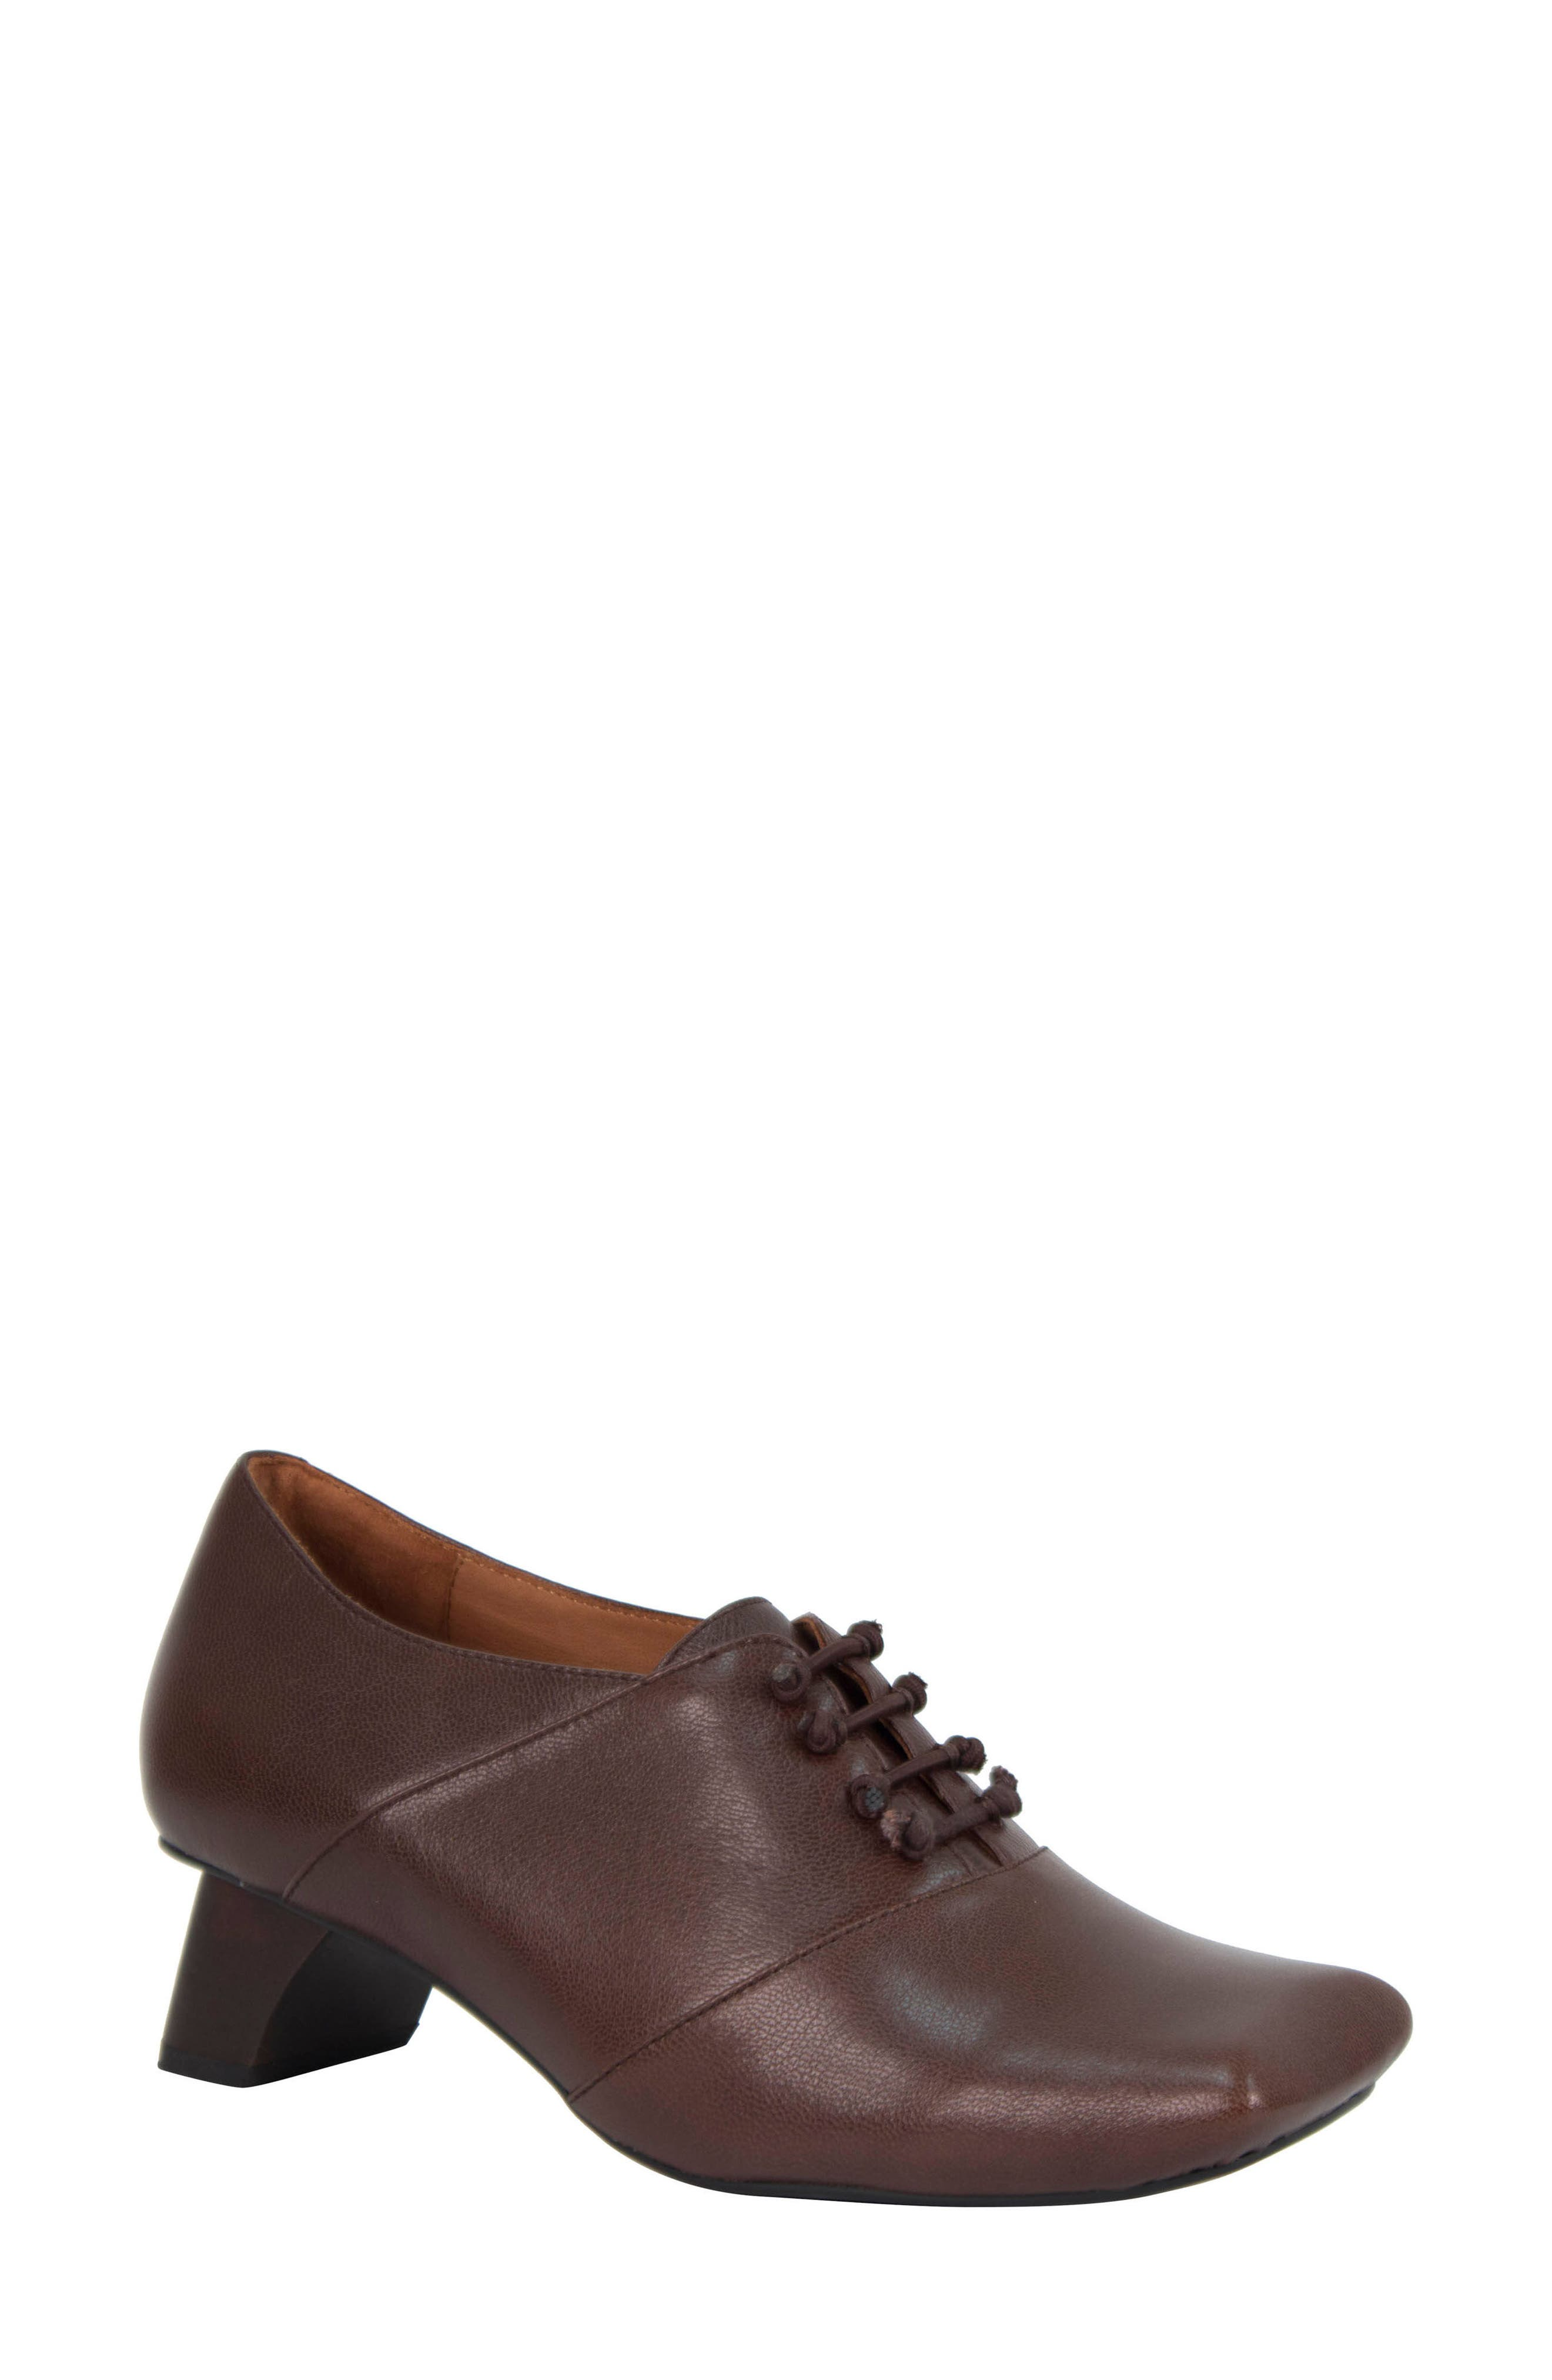 Winifred Lace-Up Bootie,                         Main,                         color, Moro Leather